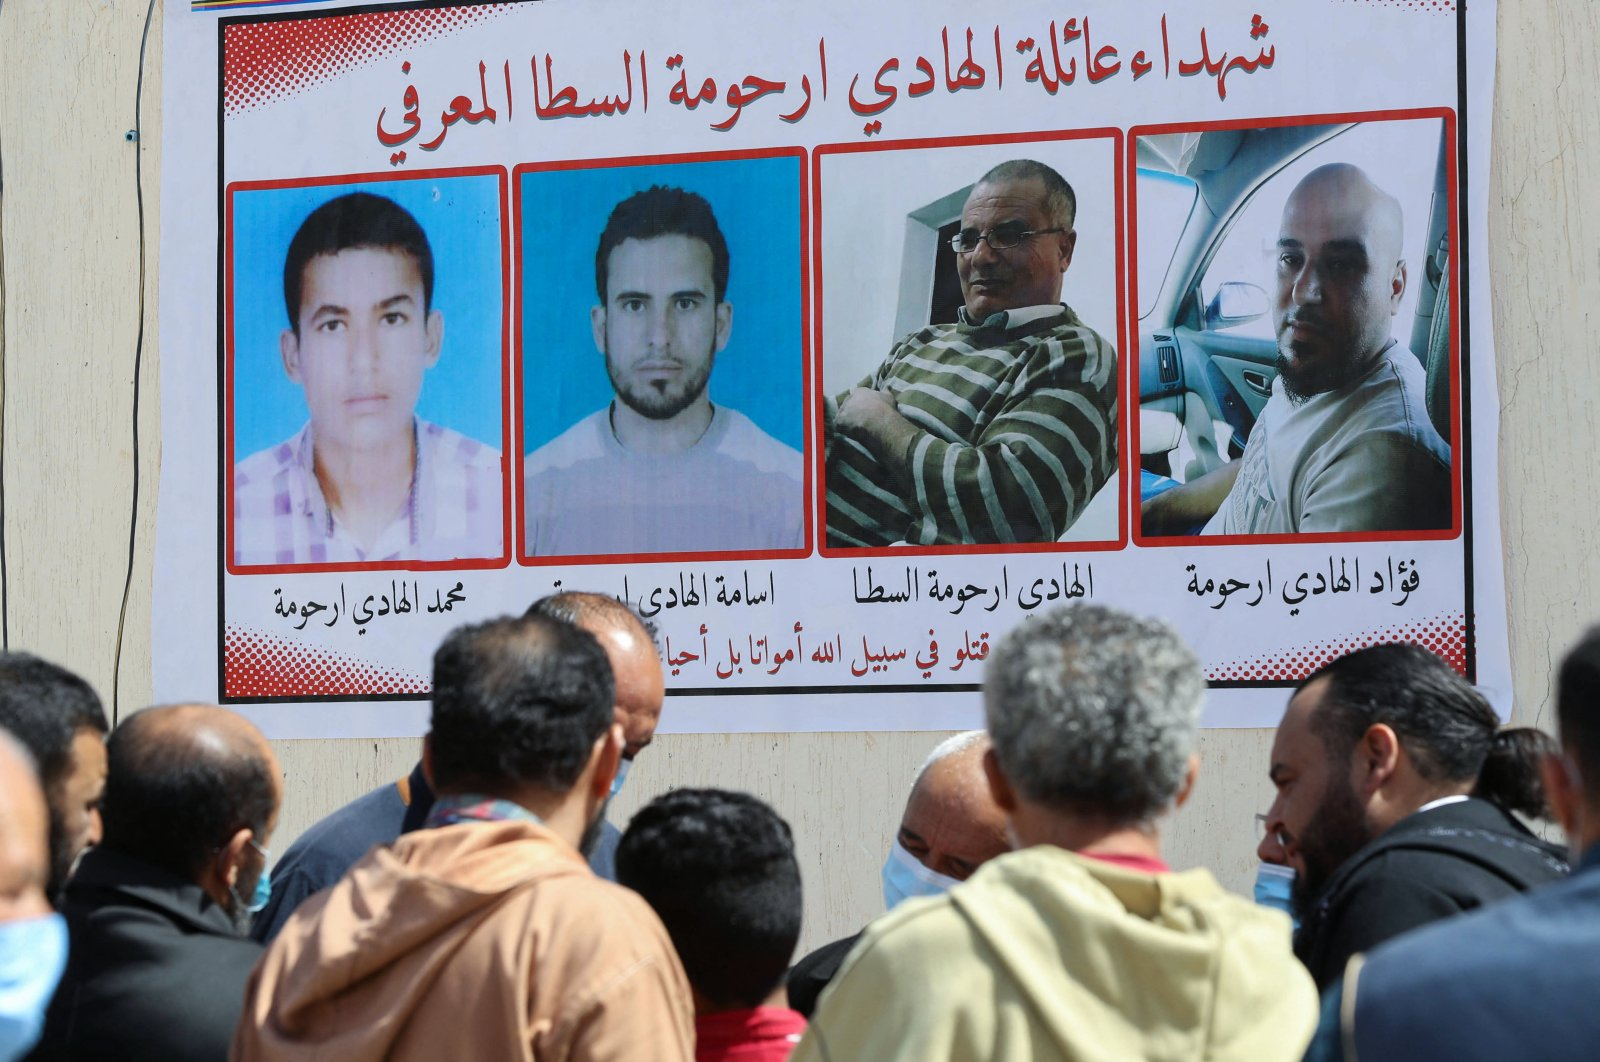 Libyans gather by a wall poster depicting victims from one family during a funeral procession for 12 bodies that were identified from mass graves found in Tarhuna, Libya, March 26, 2021. (AFP Photo)